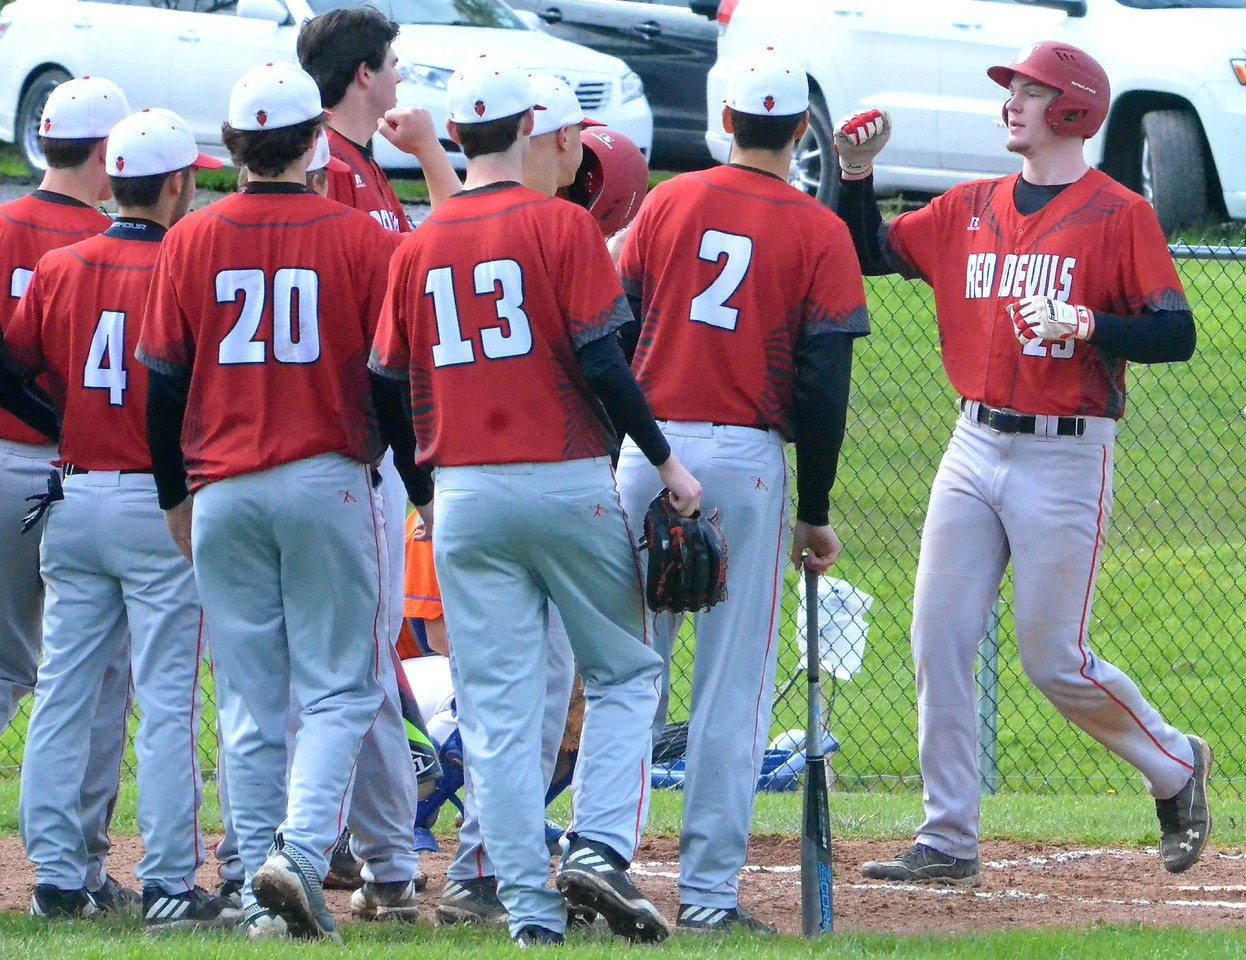 KYLE MENNIG - ONEIDA DAILY DISPATCH Vernon-Verona-Sherrill's Davey Moffett (23) is greeted at home plate by his teammates after hitting a home run against Oneida during their game in Oneida on Tuesday, May 9, 2017.